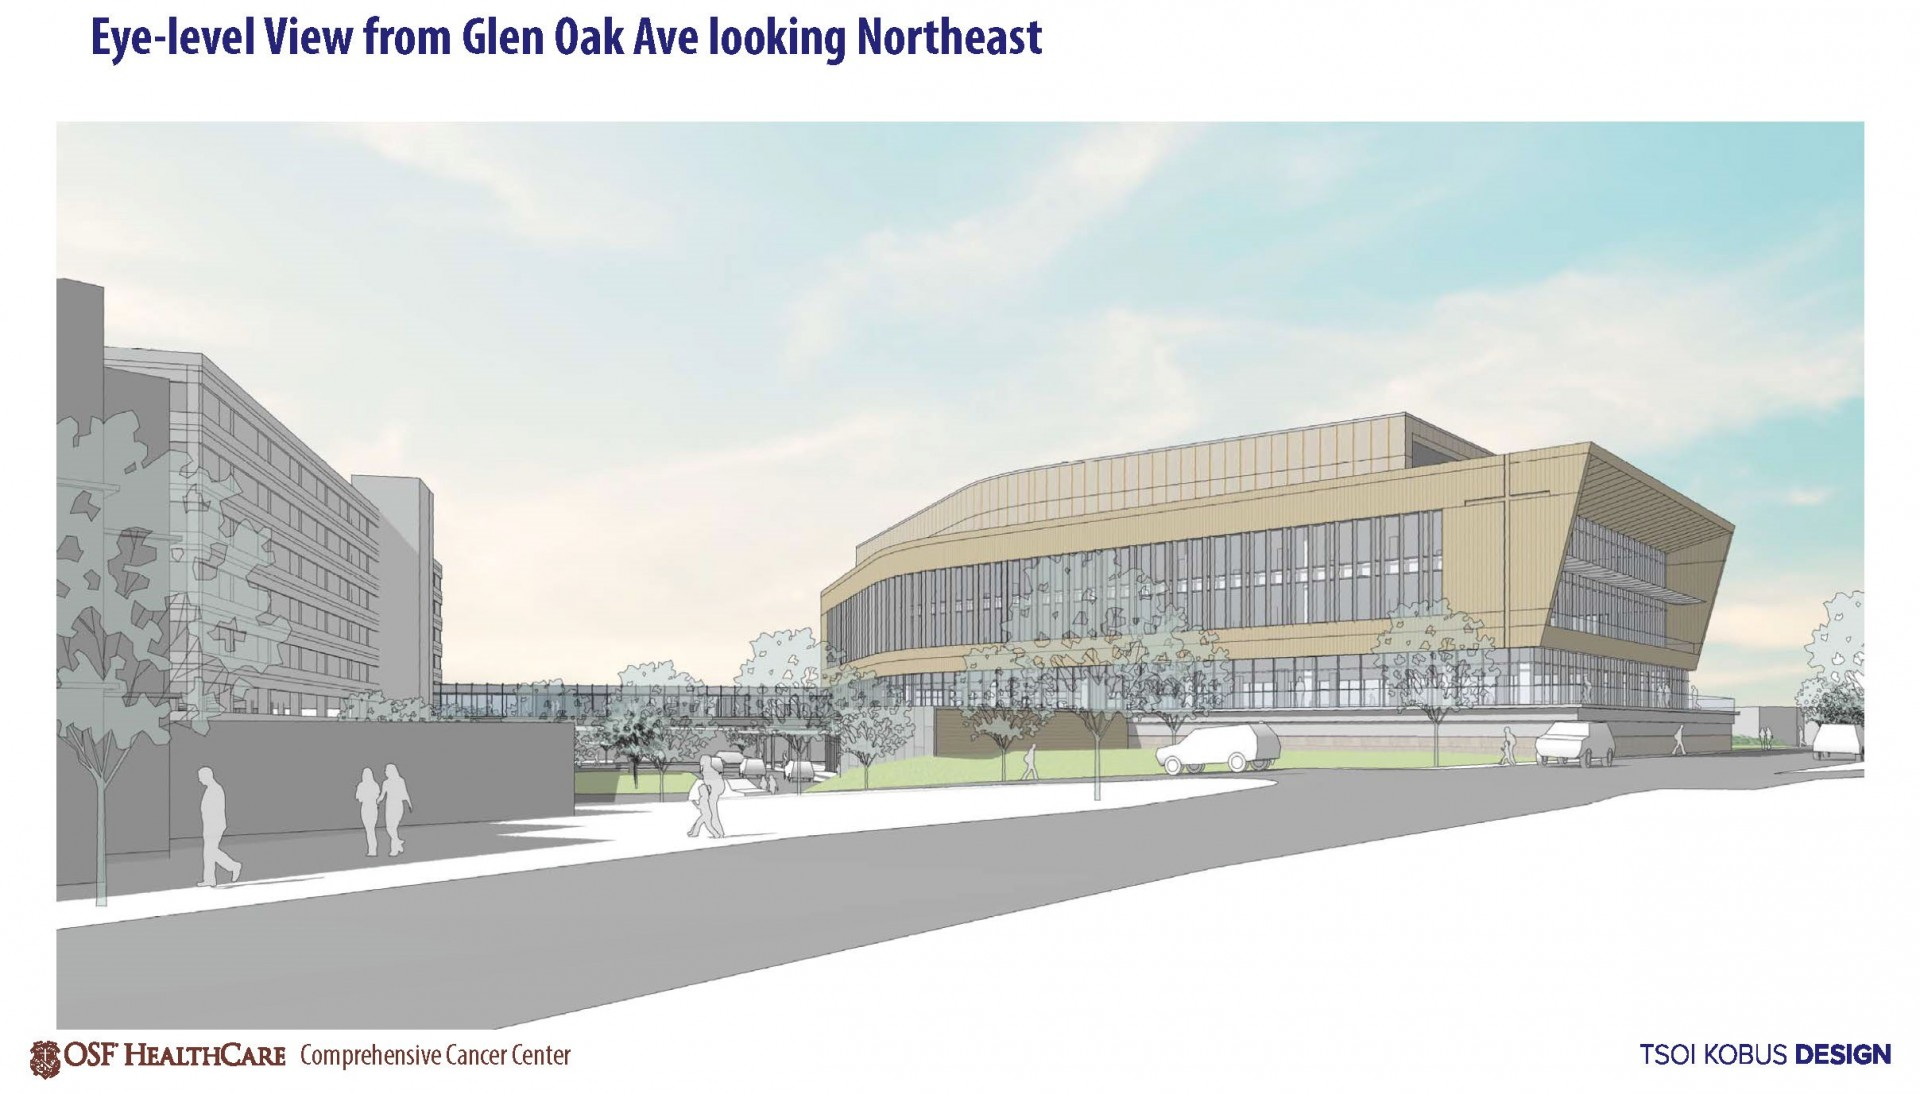 Cancer Center Prelim Rendering from Glen Oak to NE